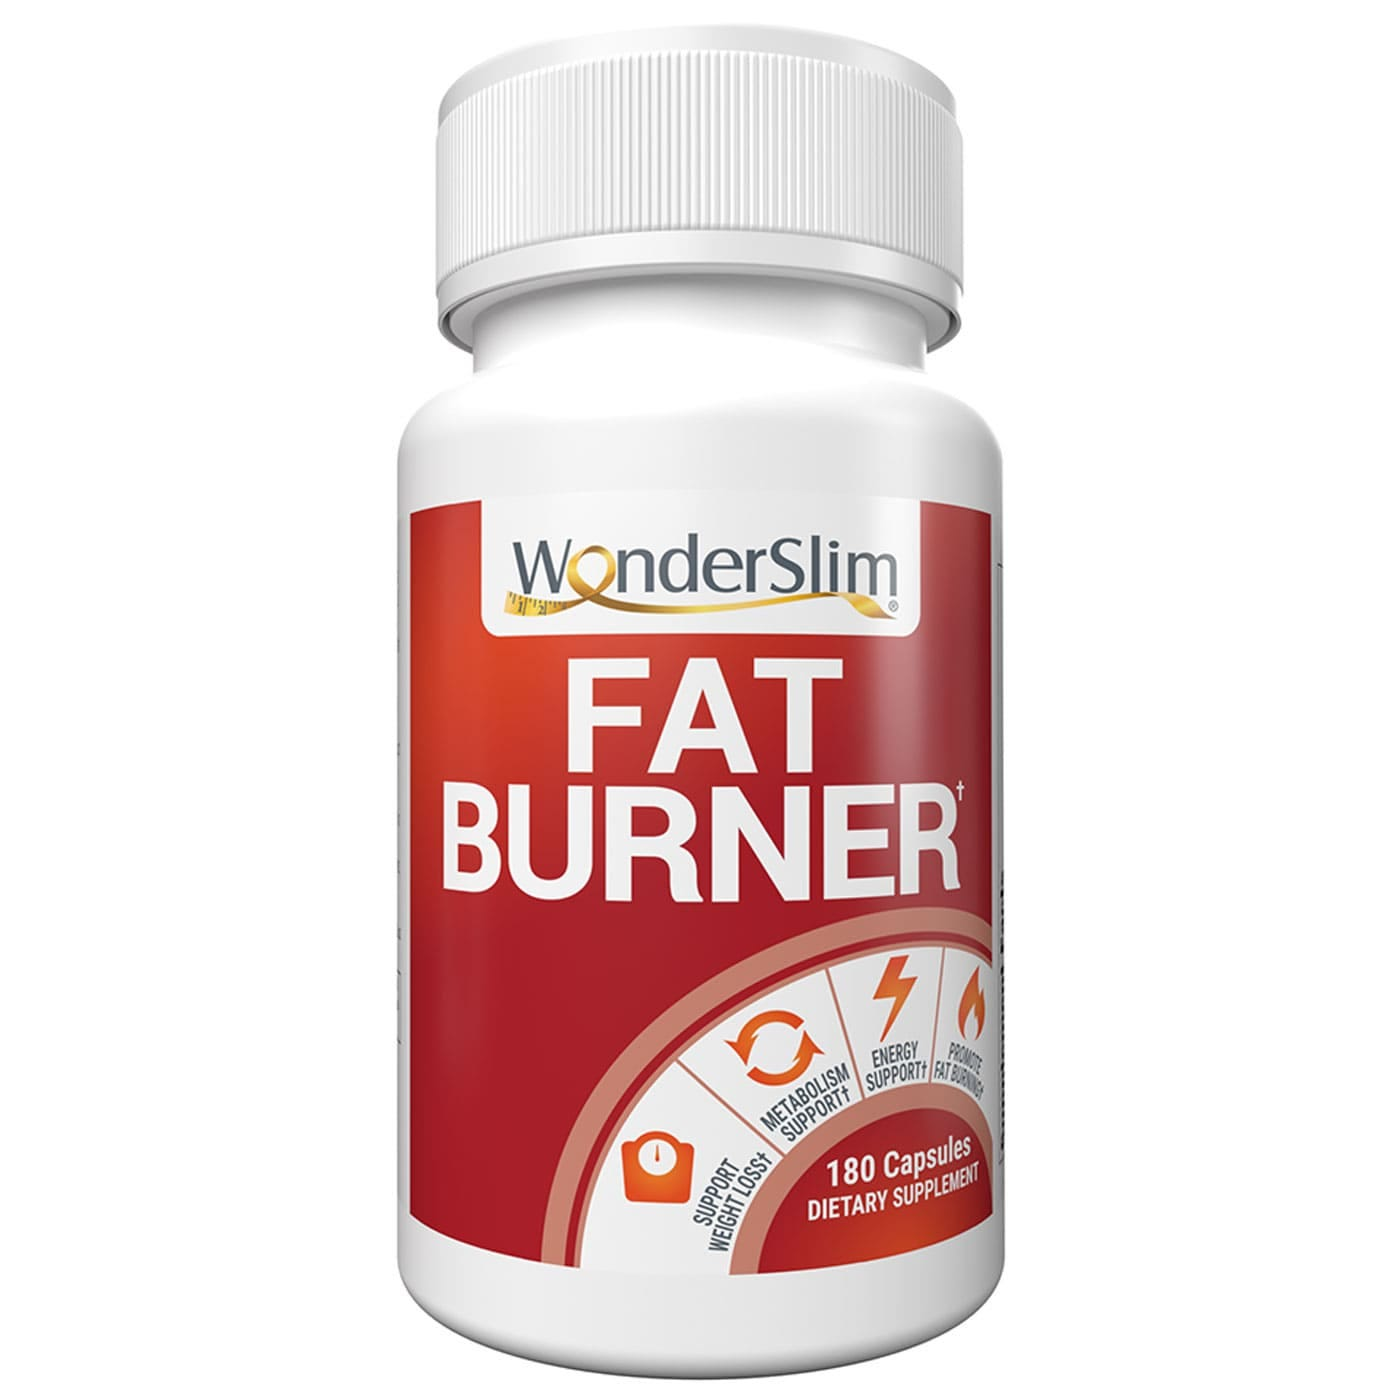 WonderSlim Fat Burner for Weight Loss Support (180ct)